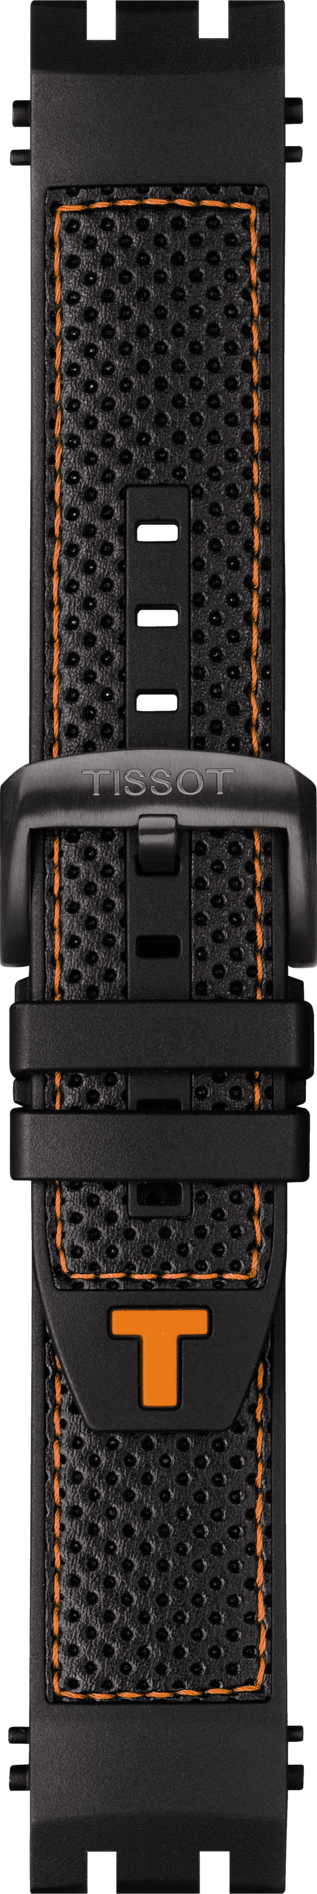 Tissot T-Race Model # T115417 Black / Orange Rubber Watch Band